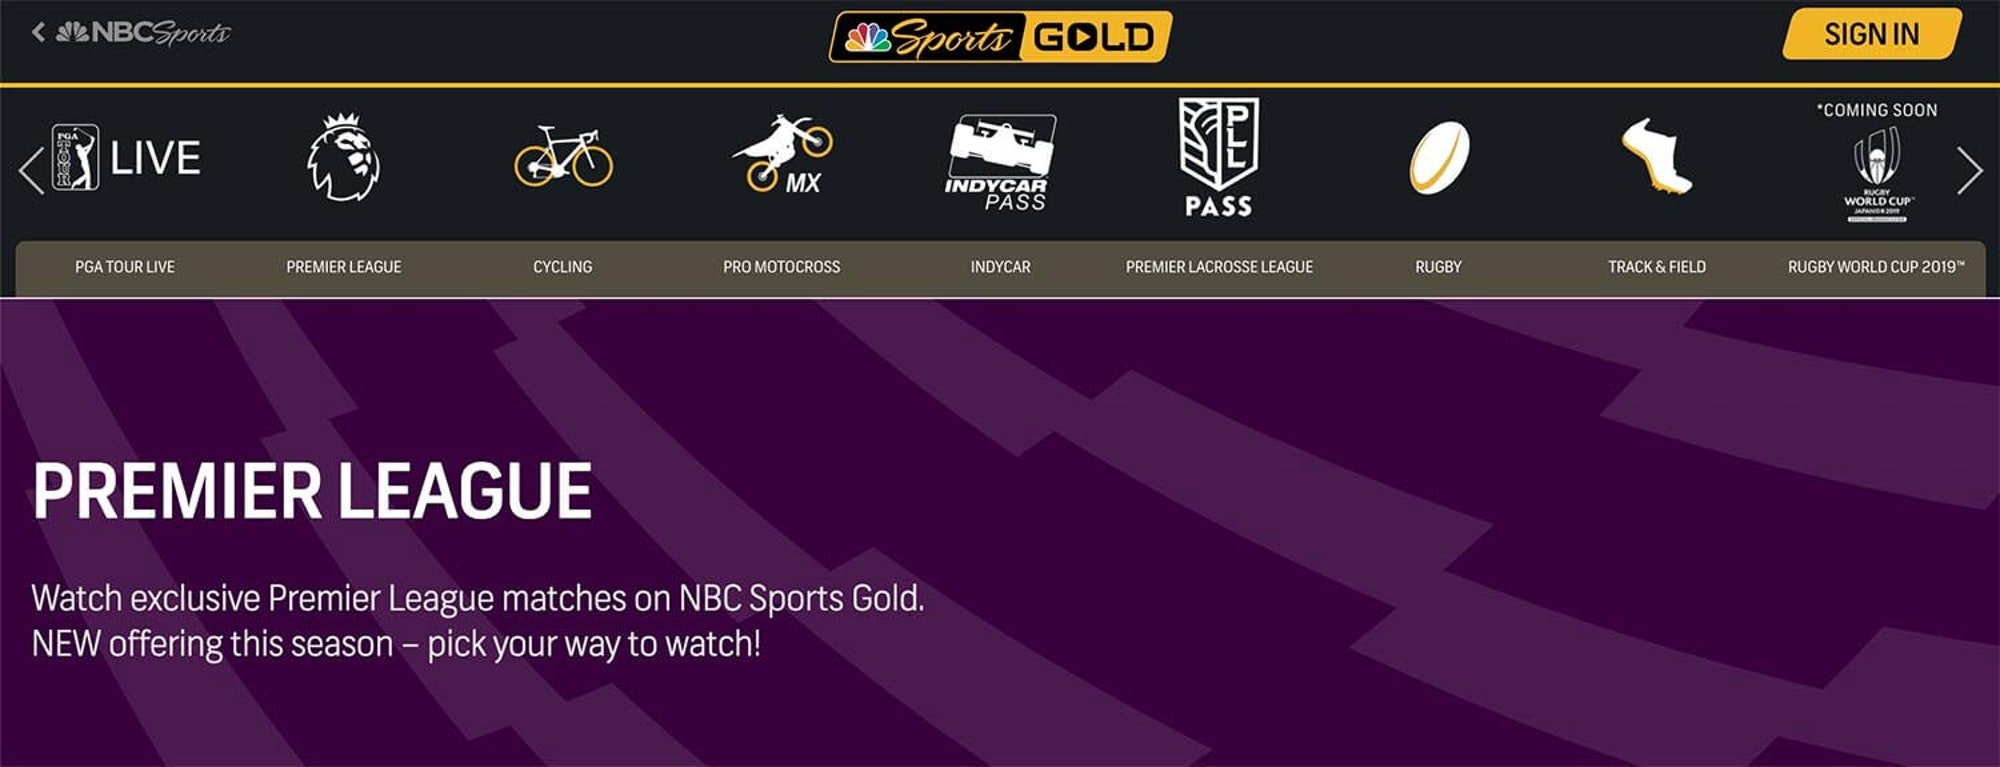 2019-20 premier league manchester united vs arsenal soccer live stream free nbc sports gold